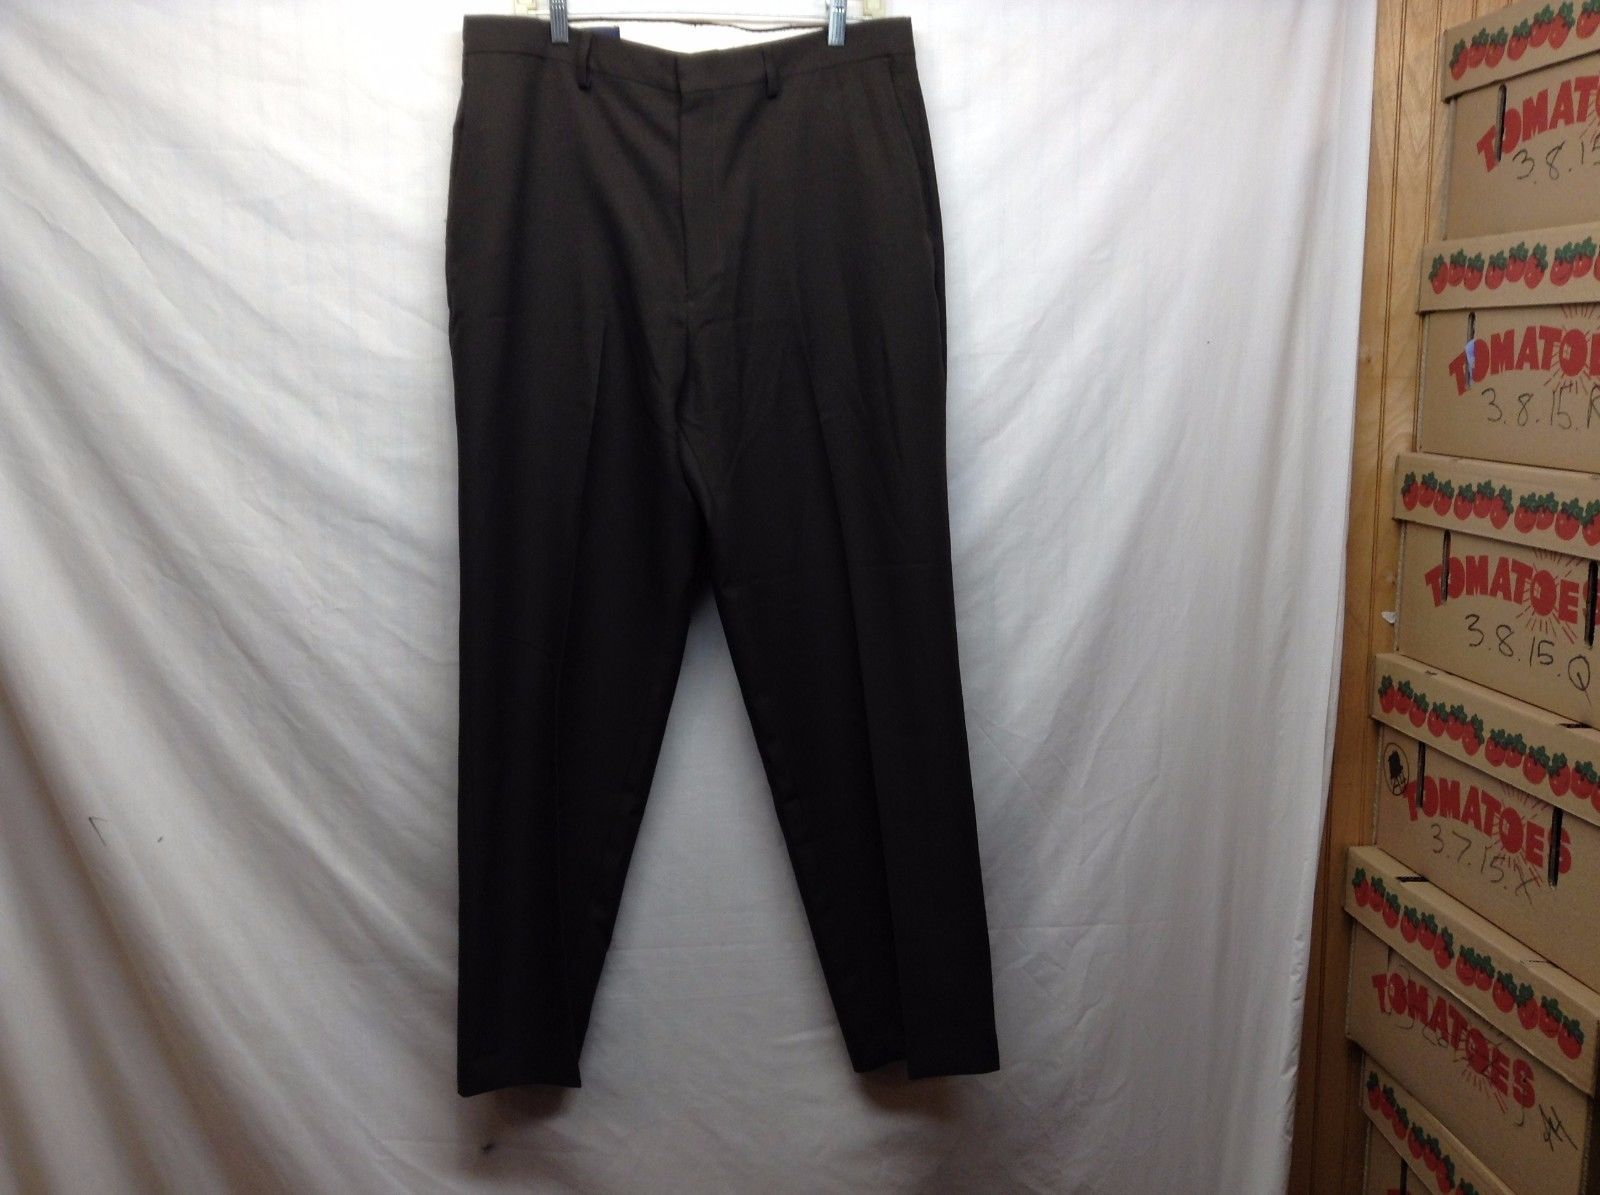 Puritan Men's Brown Dress Pants Sz 36/30